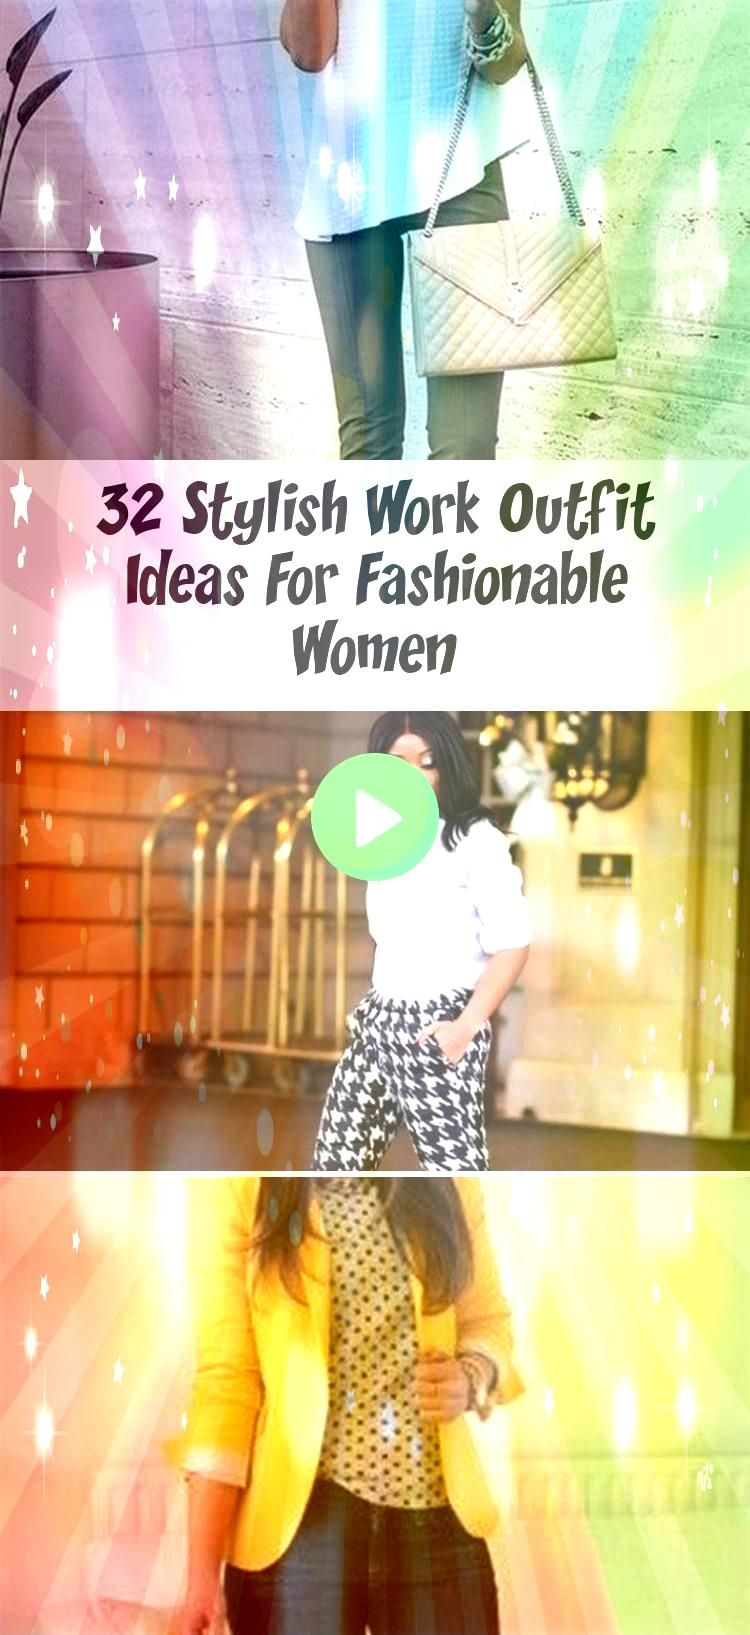 Stylish Work Outfit Ideas For Fashionable Women 32 Stylish Work Outfit Ideas for Fashionable Women32 Stylish Work Outfit Ideas for Fashionable Women 15 Chic Plus Size Out...